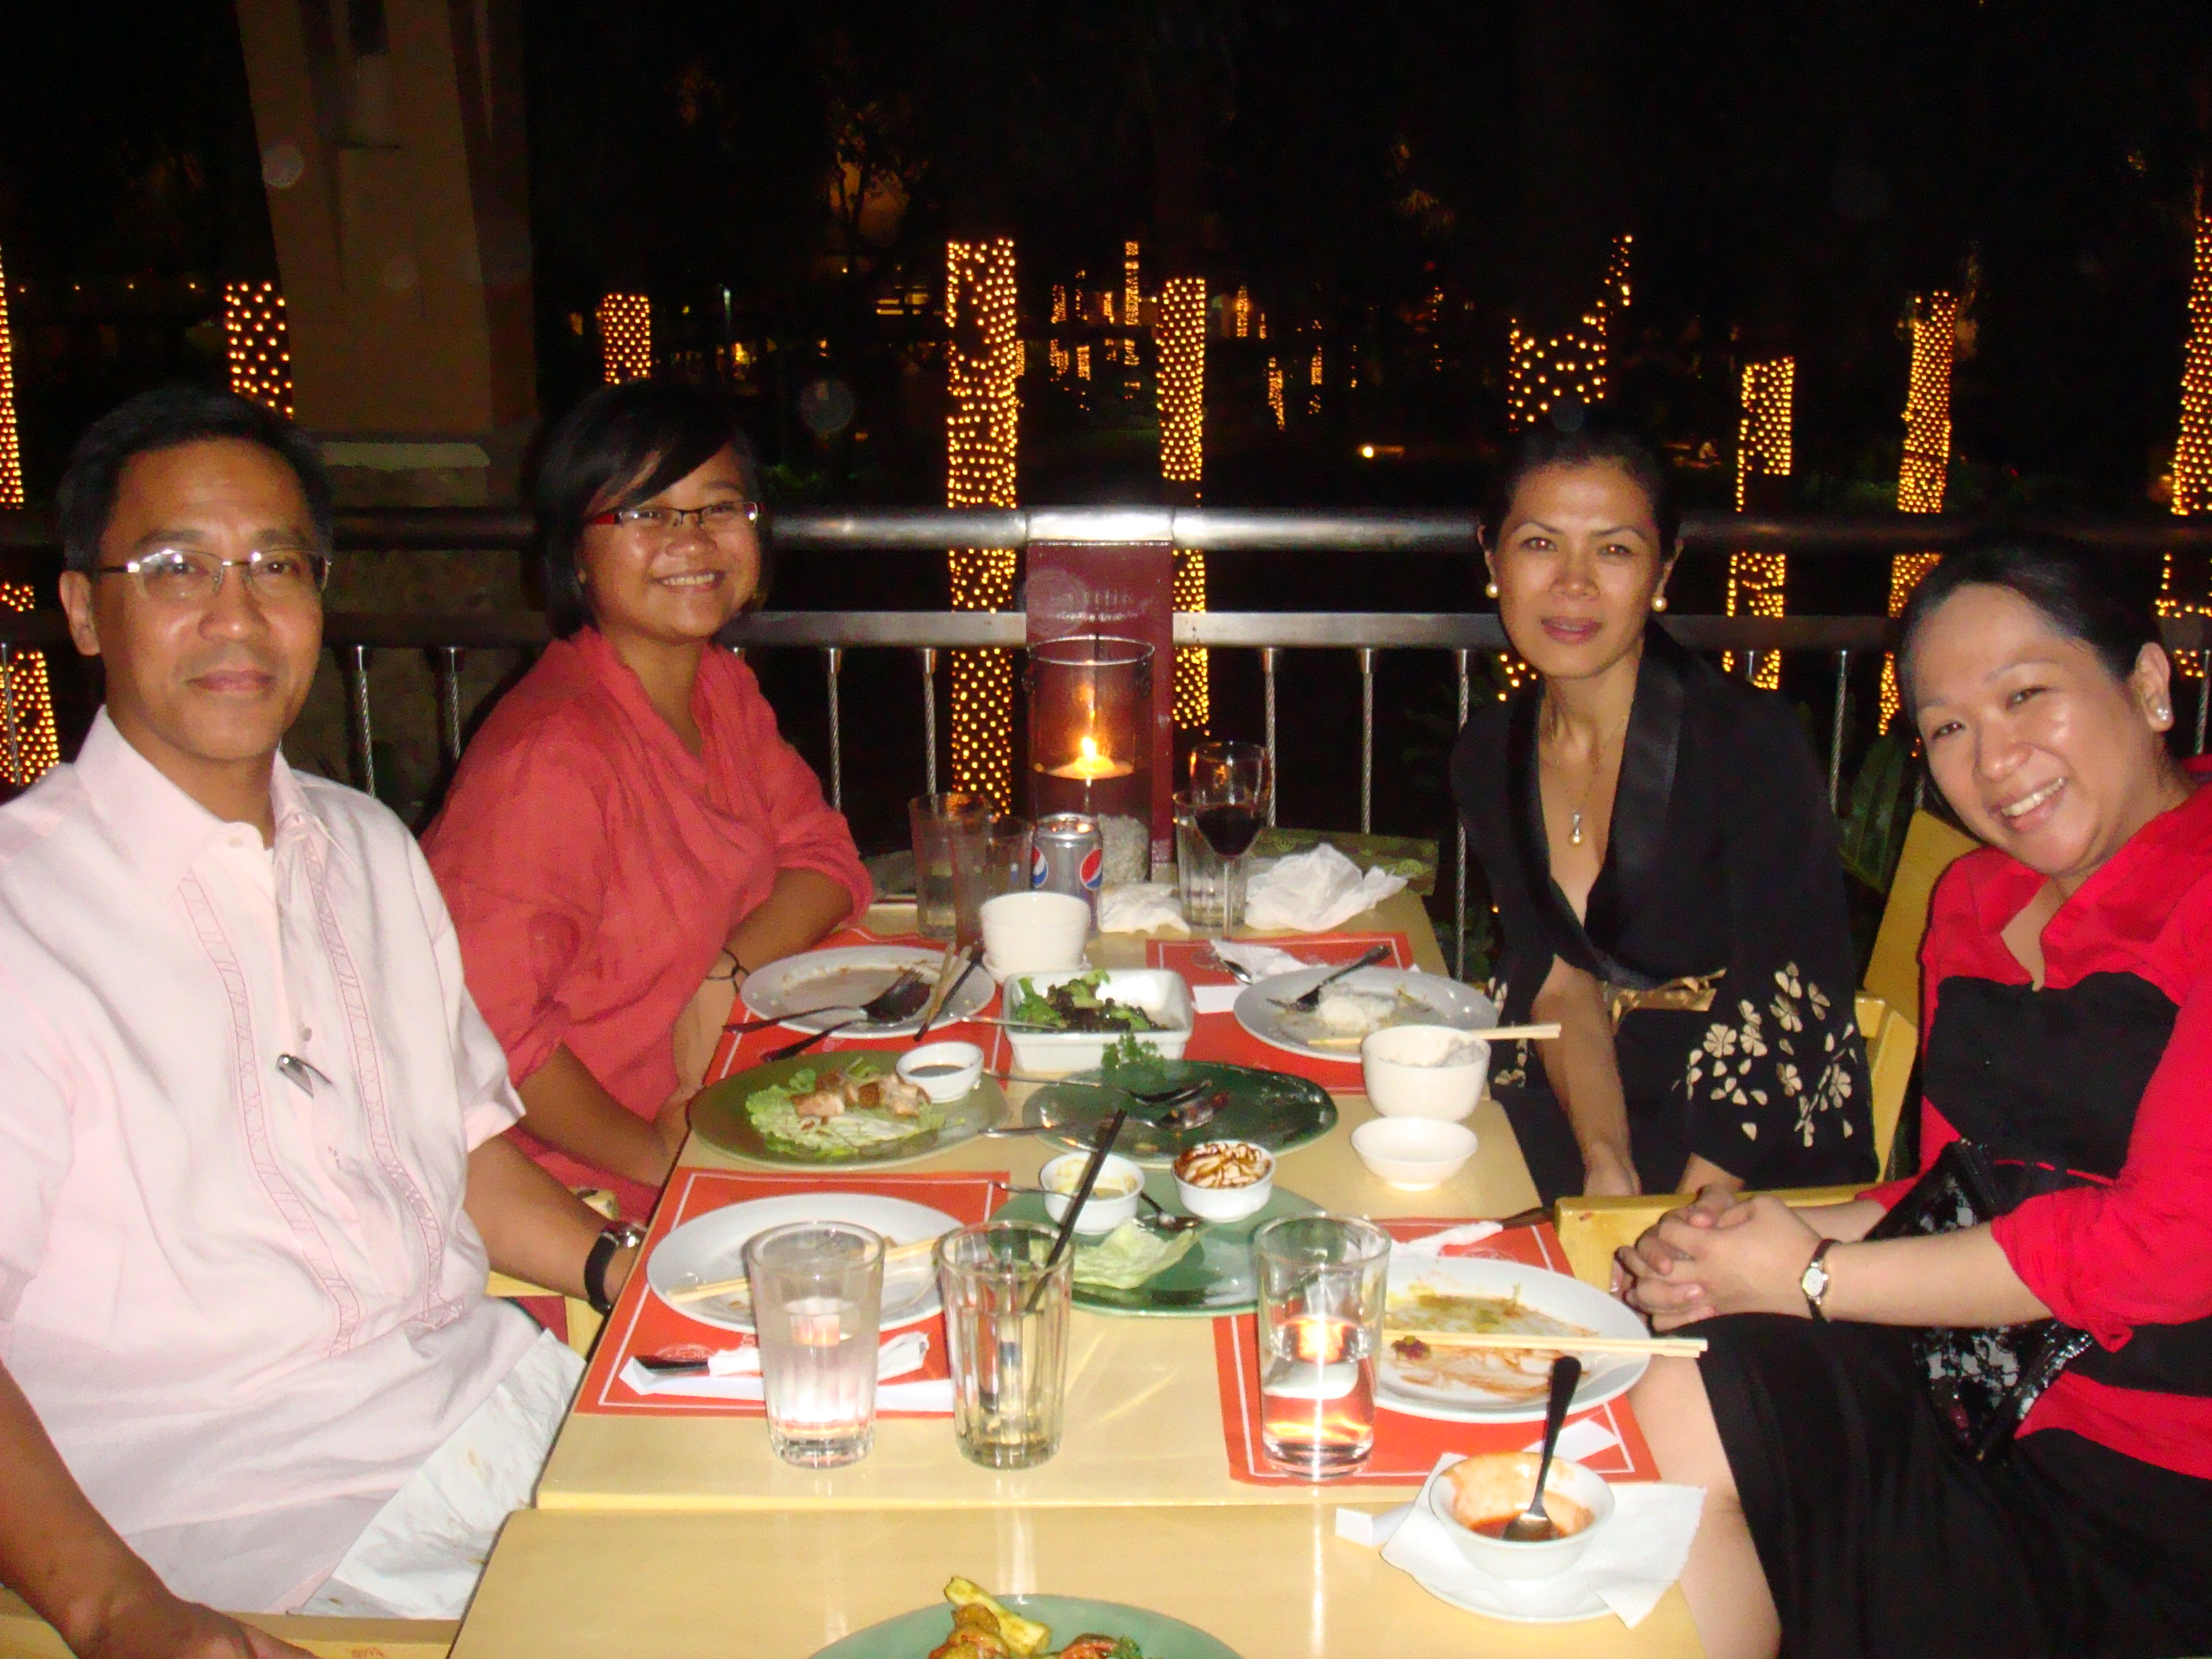 Theary Seng having dinner with AIM Associate Dean Mike Luz, his daughter Bunny and his assistant lawyer Daisy Gabriel at a posh shopping center in Makati after the talk at AIM, 18 Feb. 2010